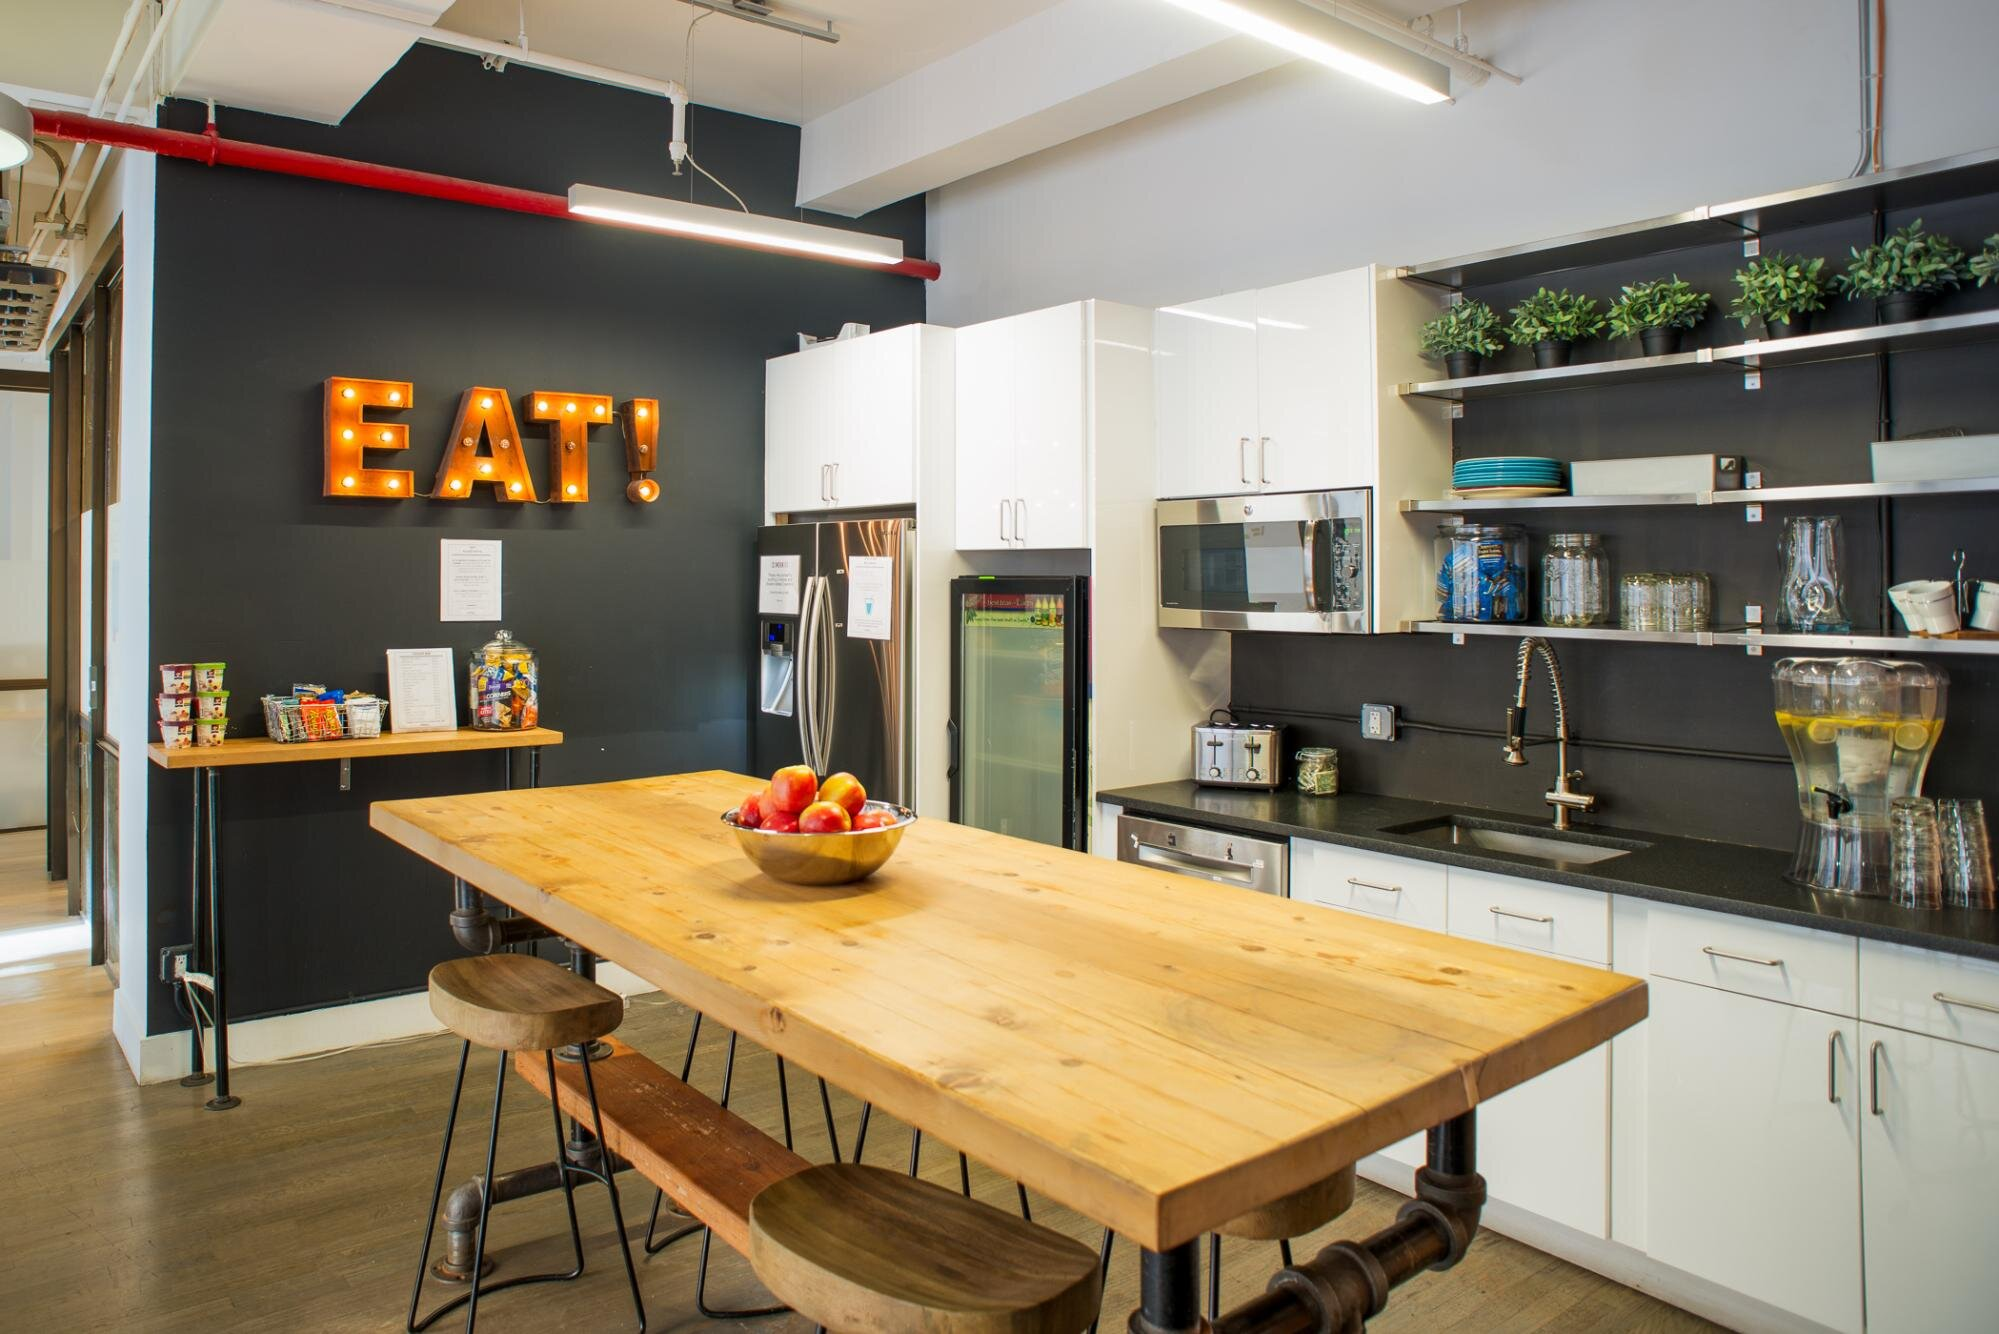 Example of a kitchen in a flexible office space